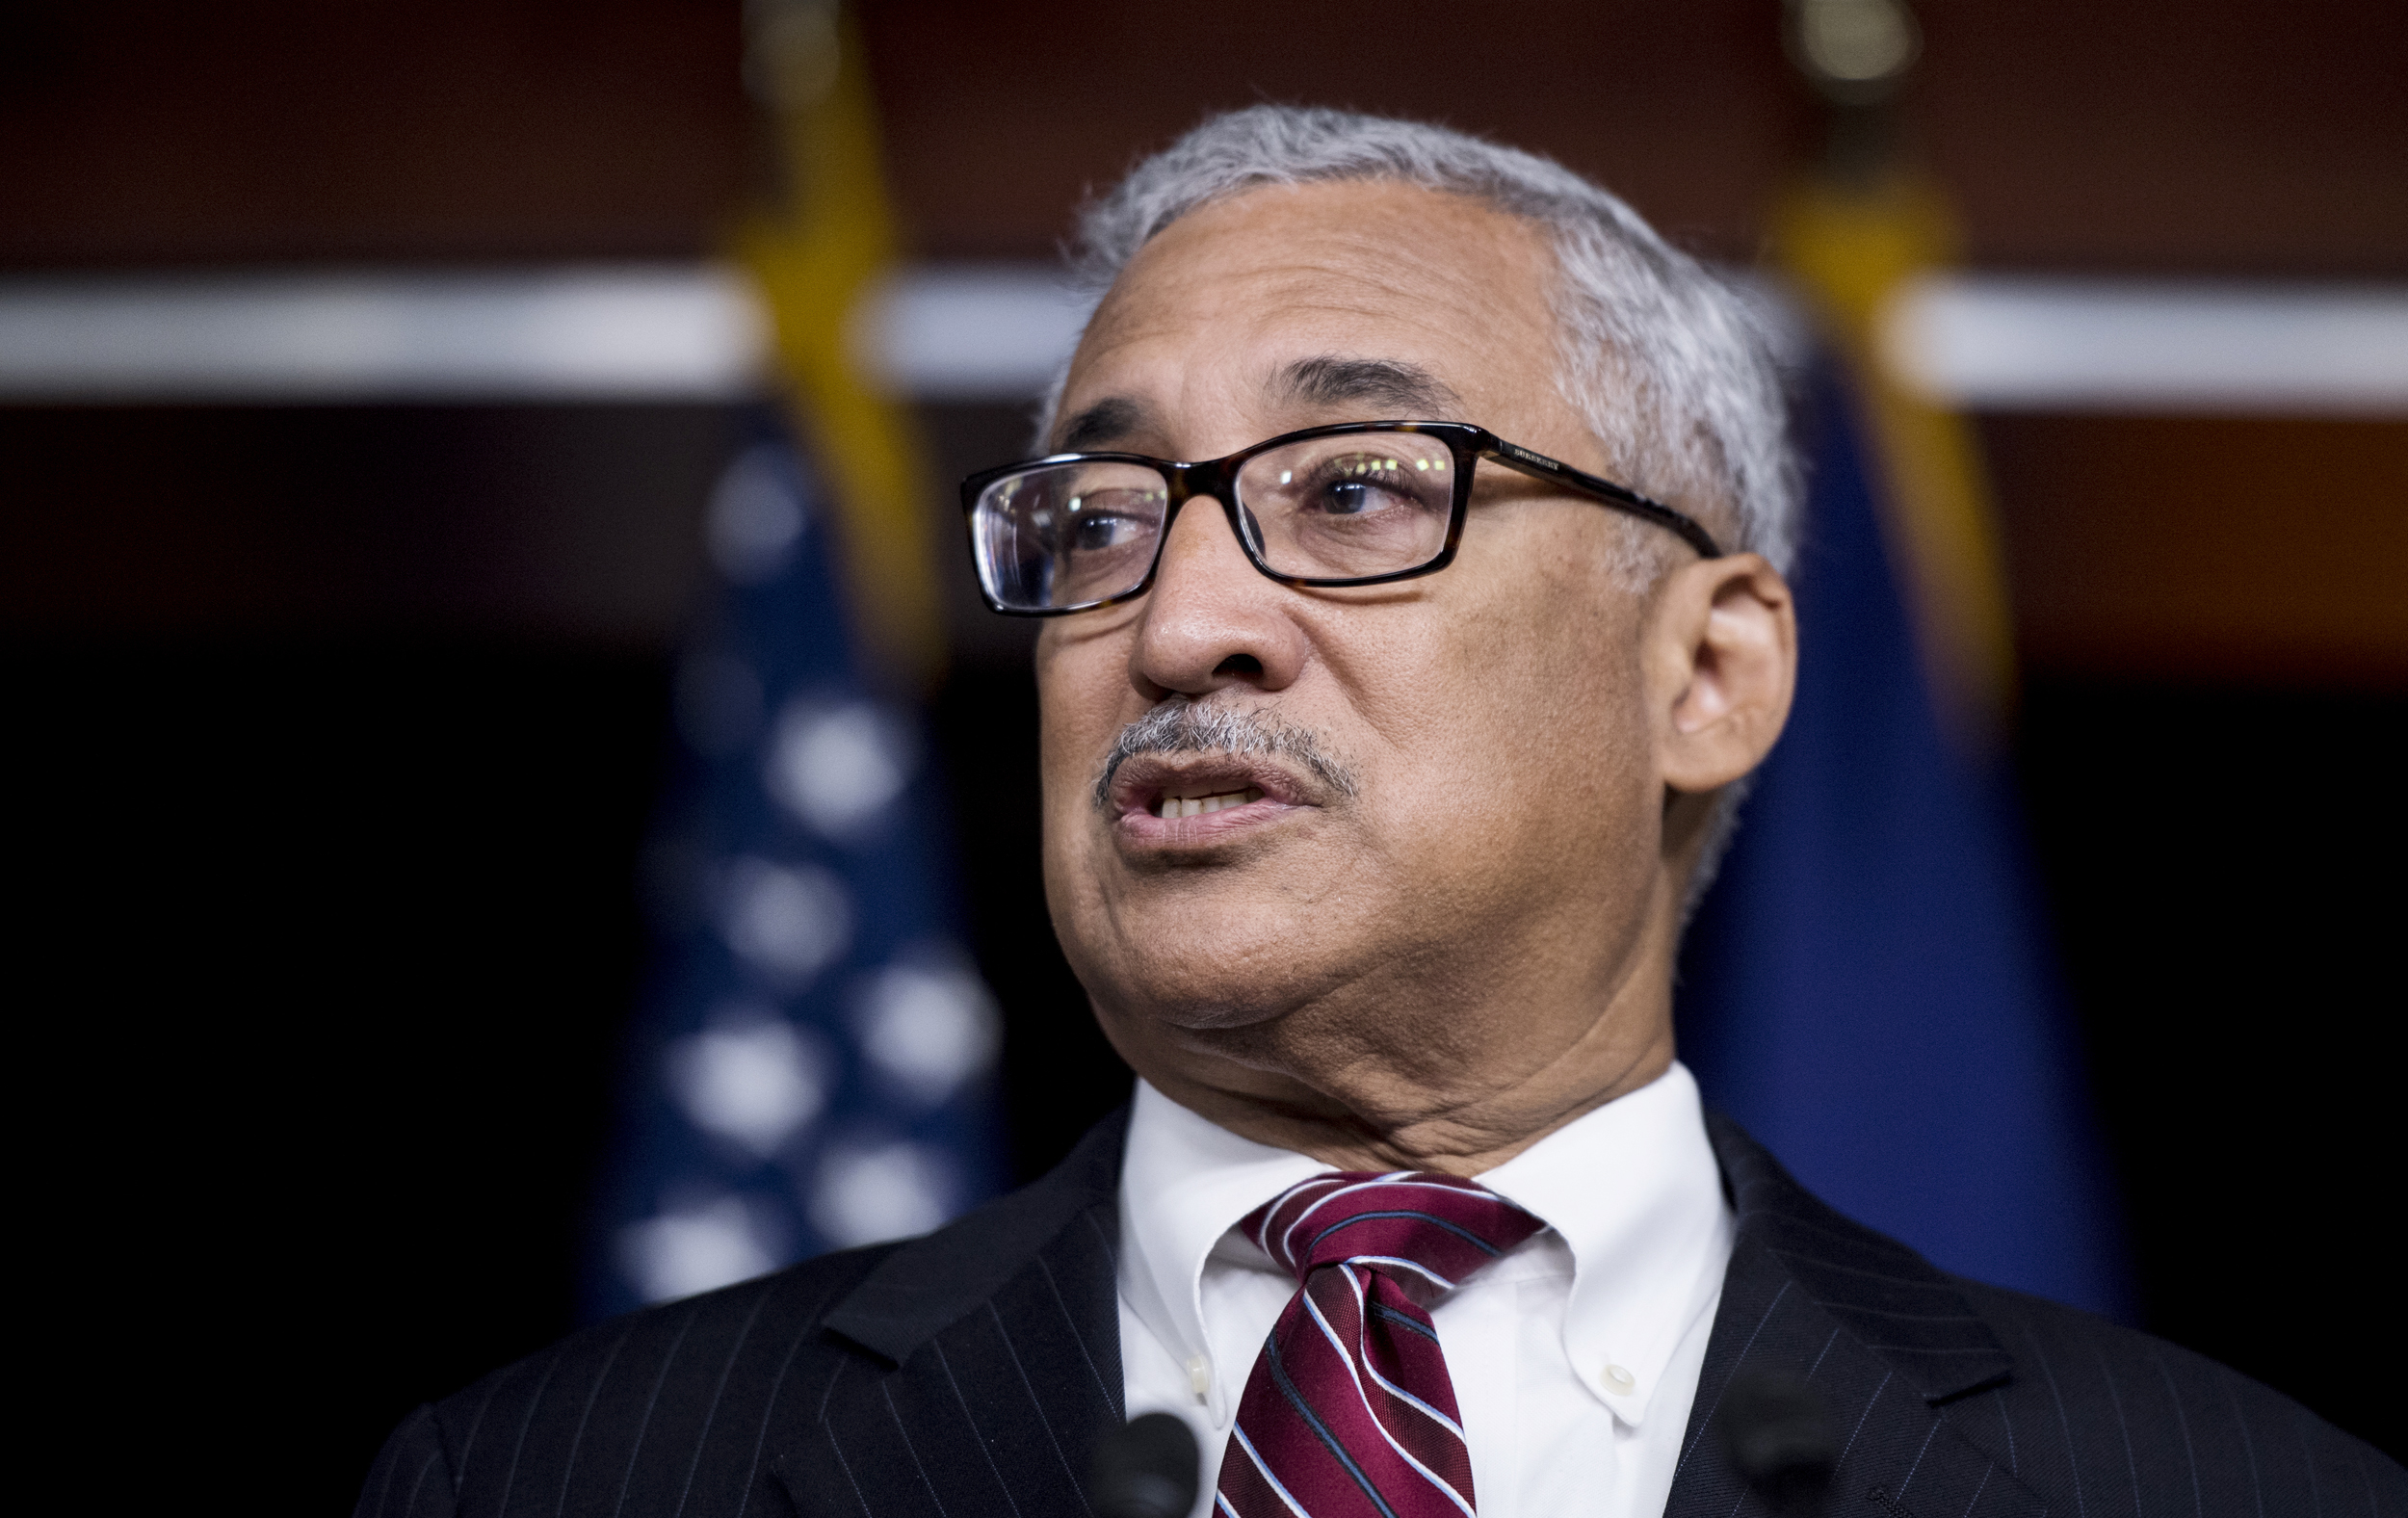 Image: Rep. Bobby Scott